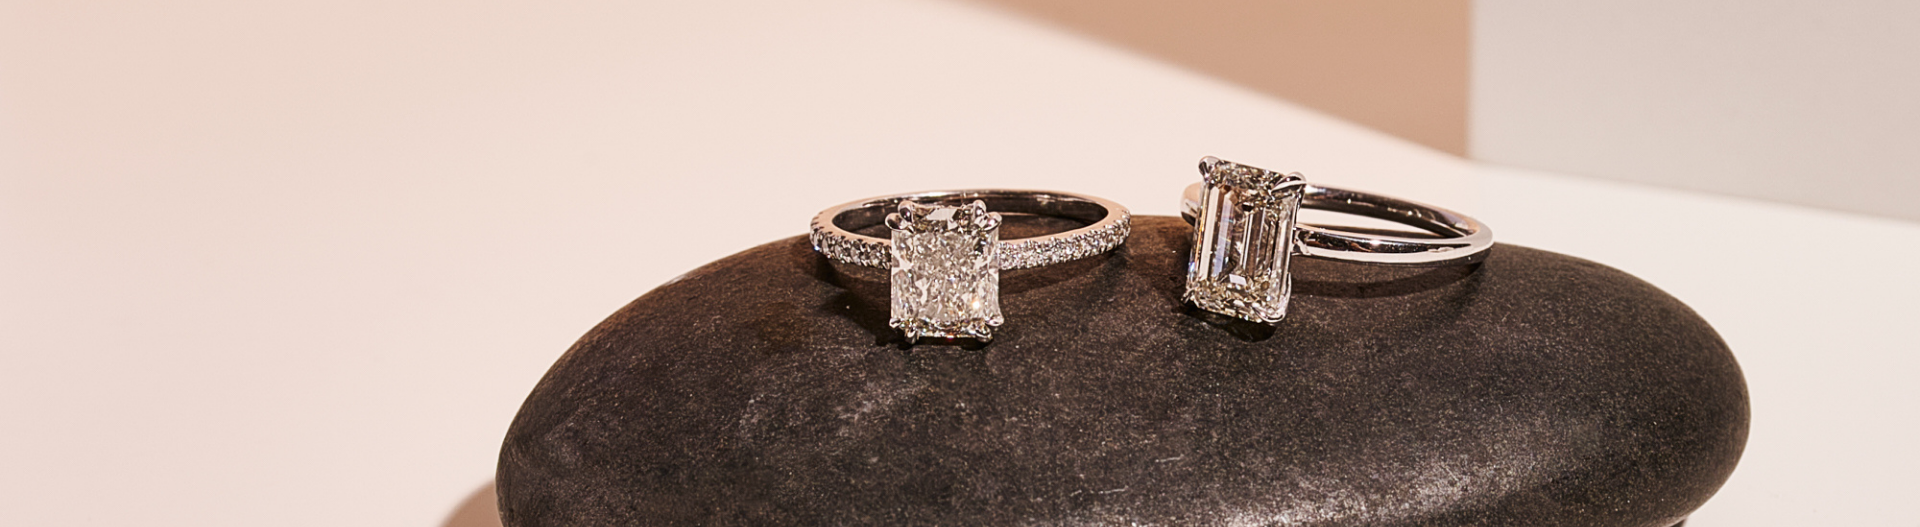 IN THE CUT: THE CRAFTSMANSHIP OF A WELL-CUT DIAMOND